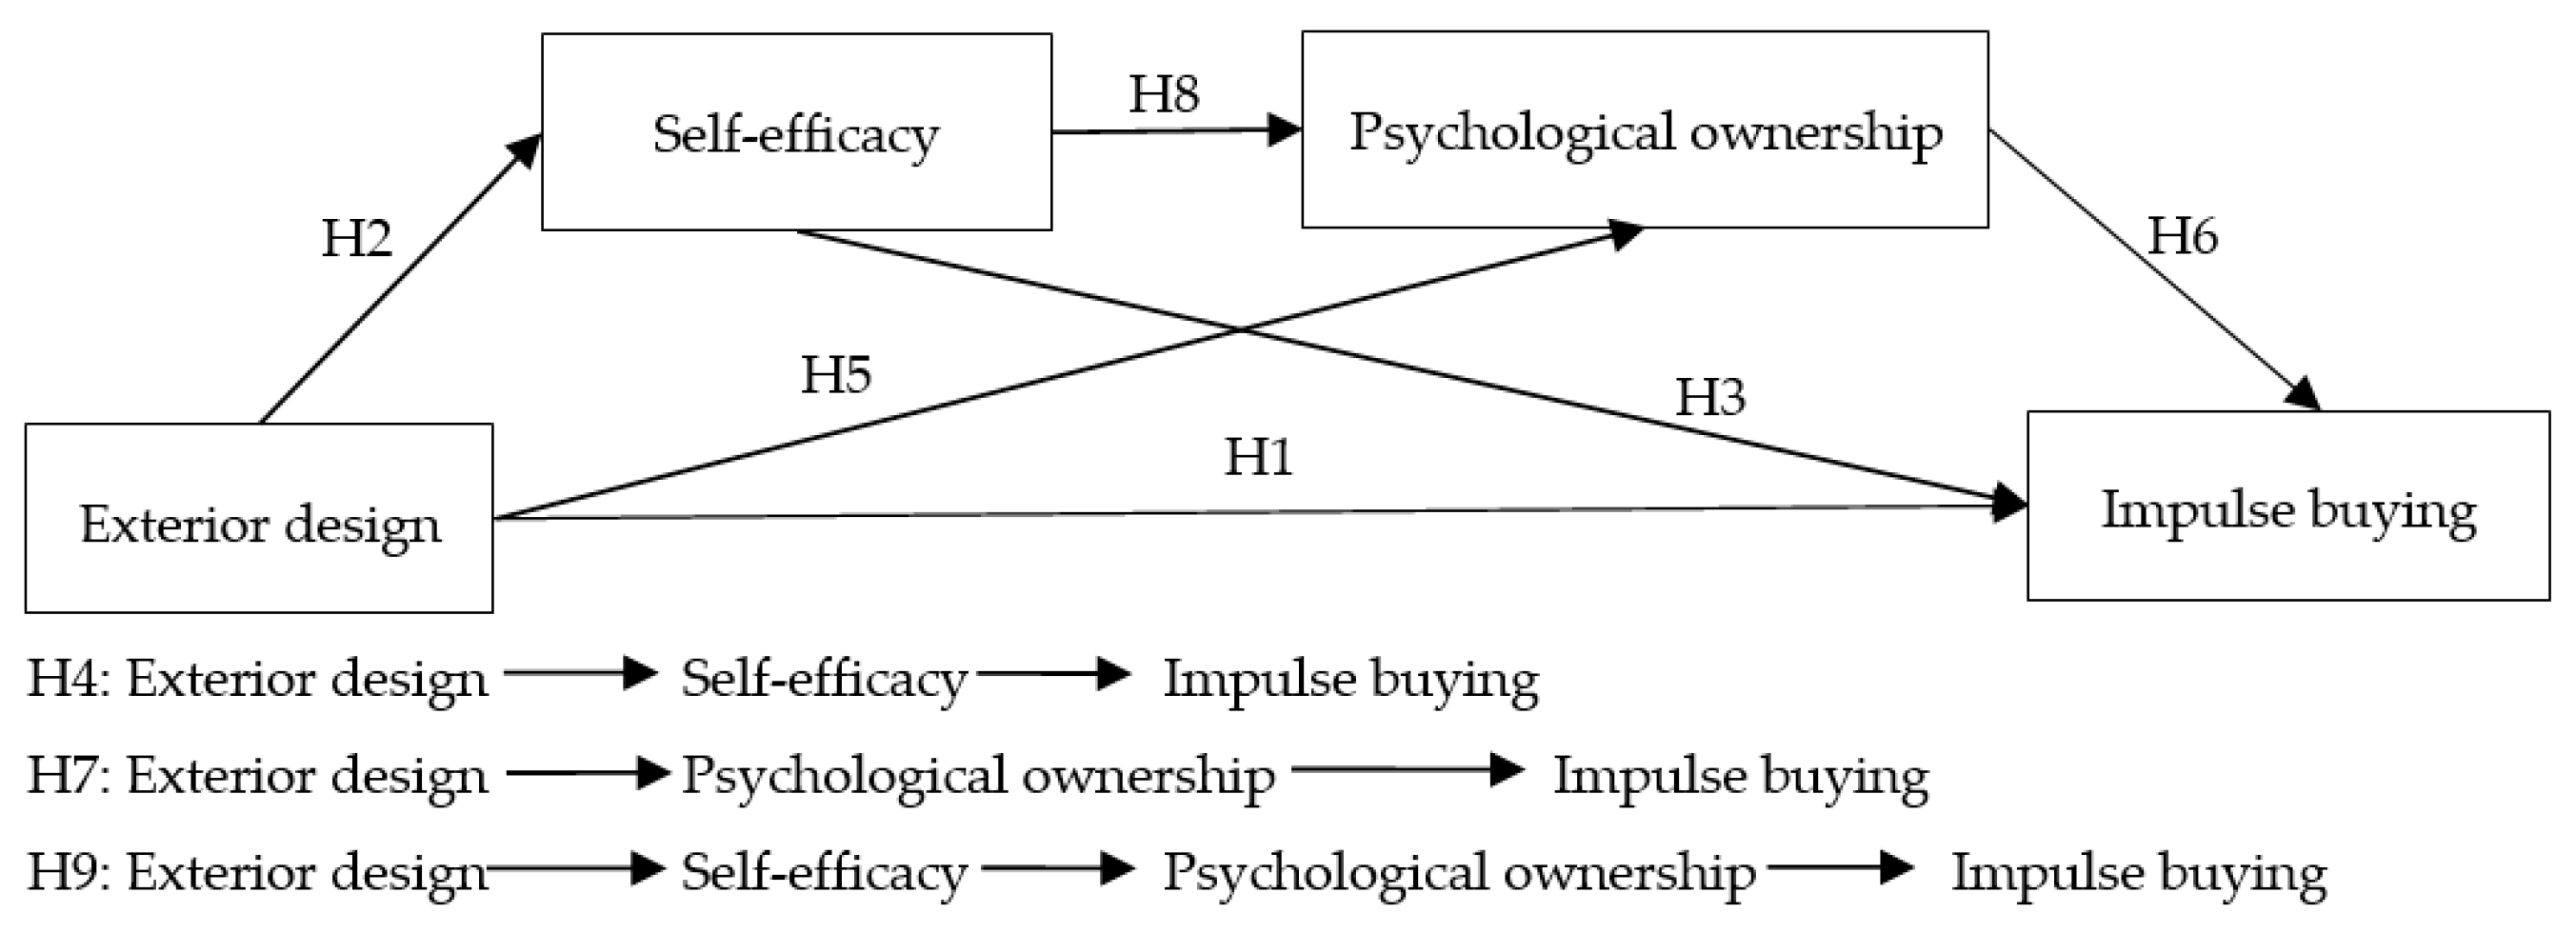 Sustainability Free Full Text The Effects Of Live Platform Exterior Design On Sustainable Impulse Buying Exploring The Mechanisms Of Self Efficacy And Psychological Ownership Html